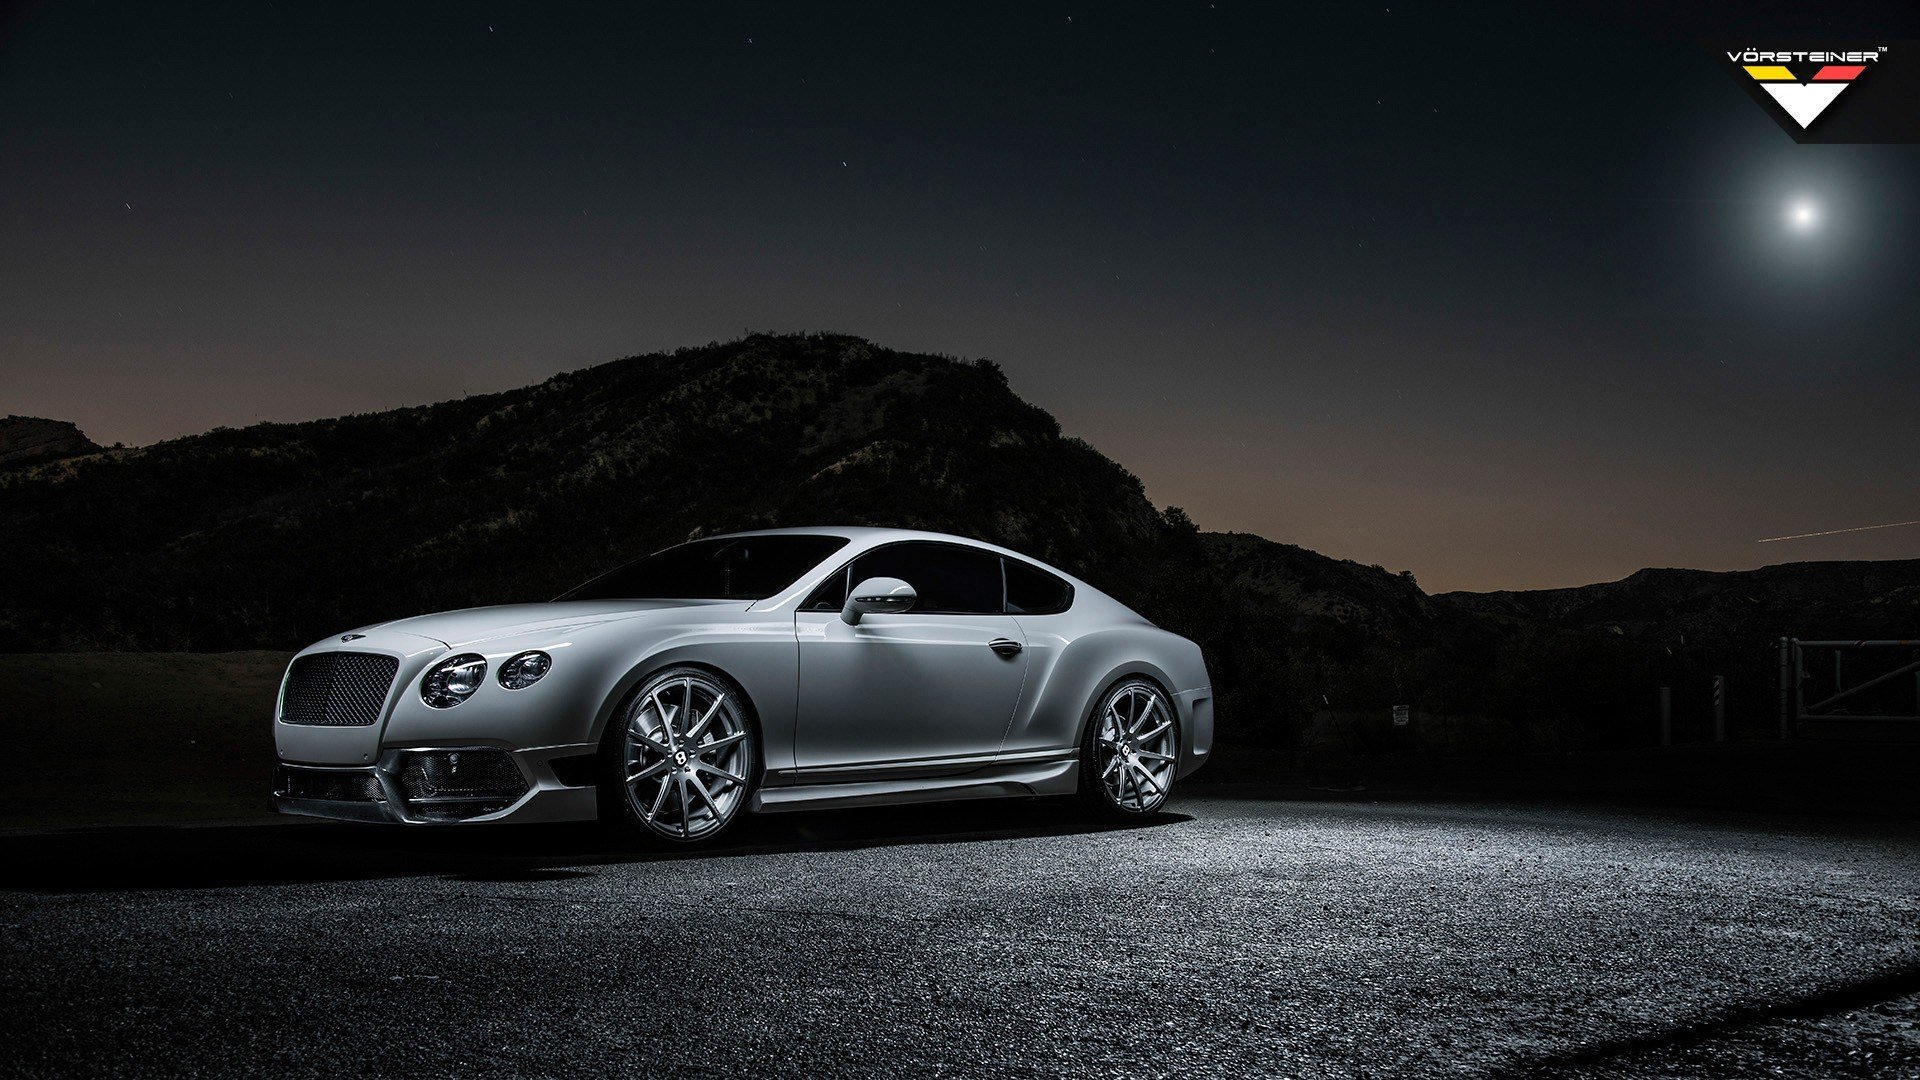 Latest 2013 Vorsteiner Bentley Continental Gt Br10 Rs Wallpaper Free Download